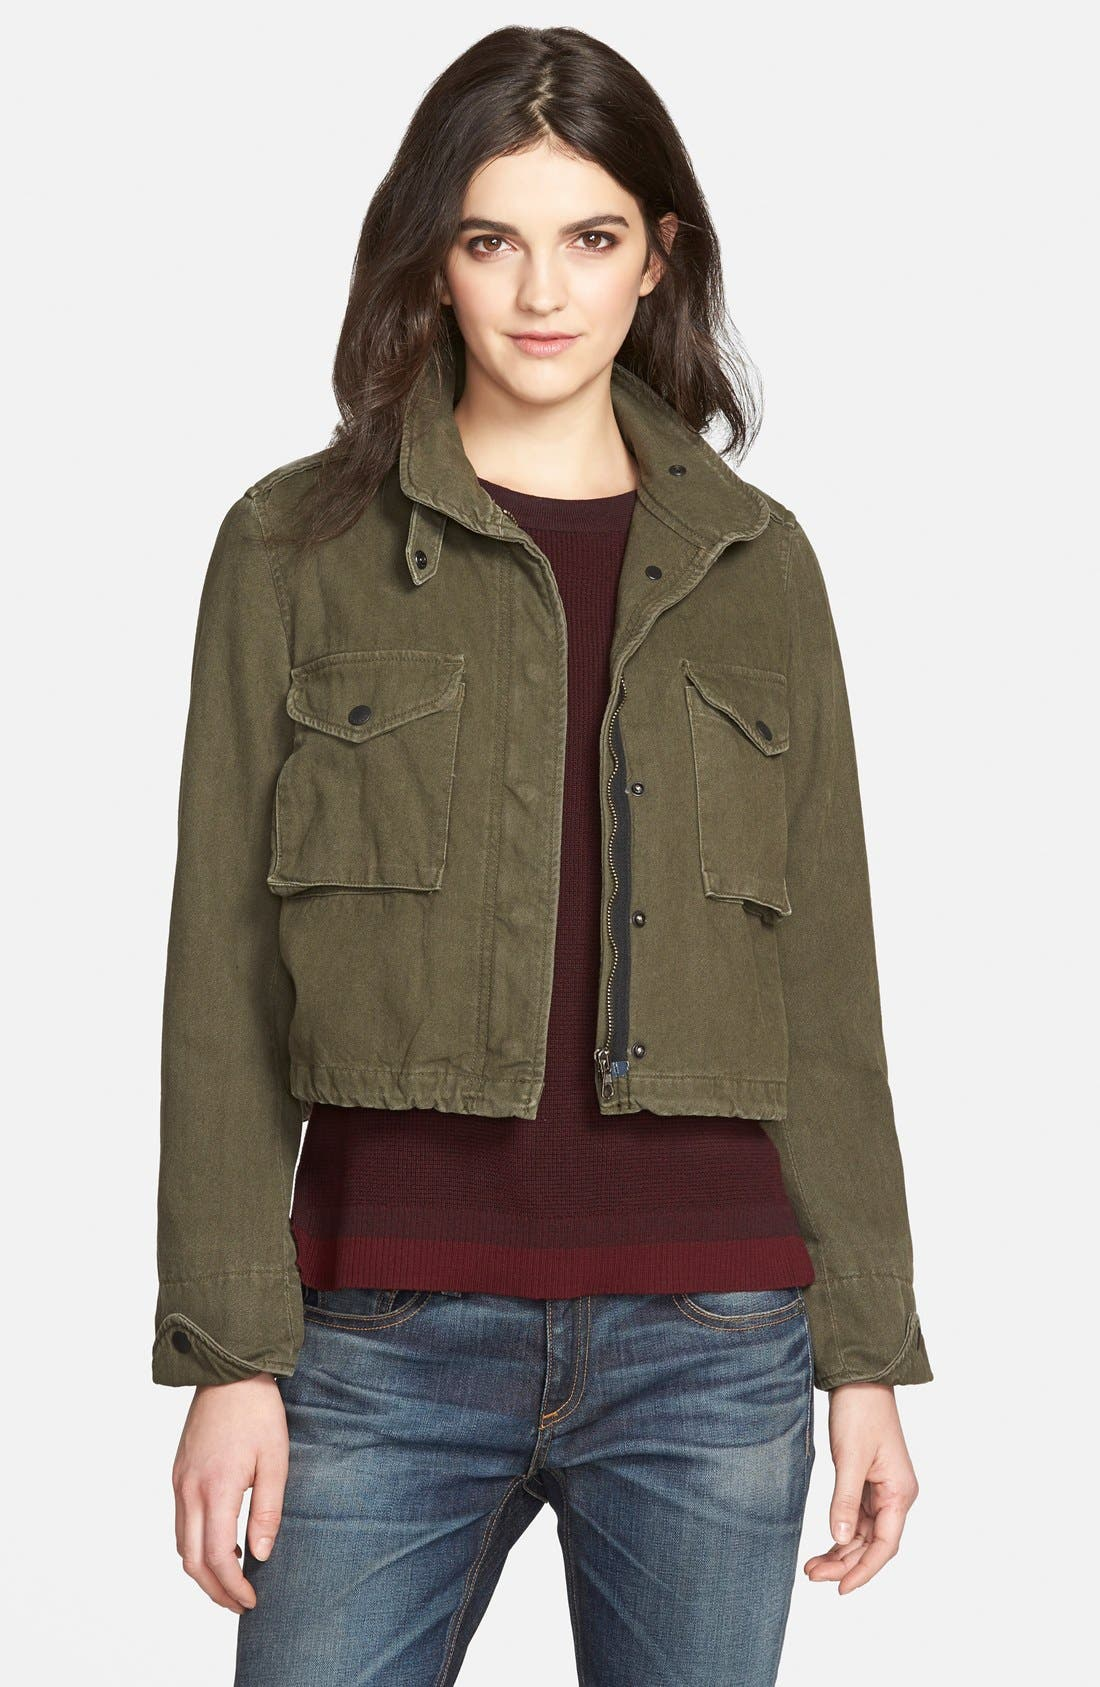 /JEAN 'M15' Military Jacket, Main, color, 300